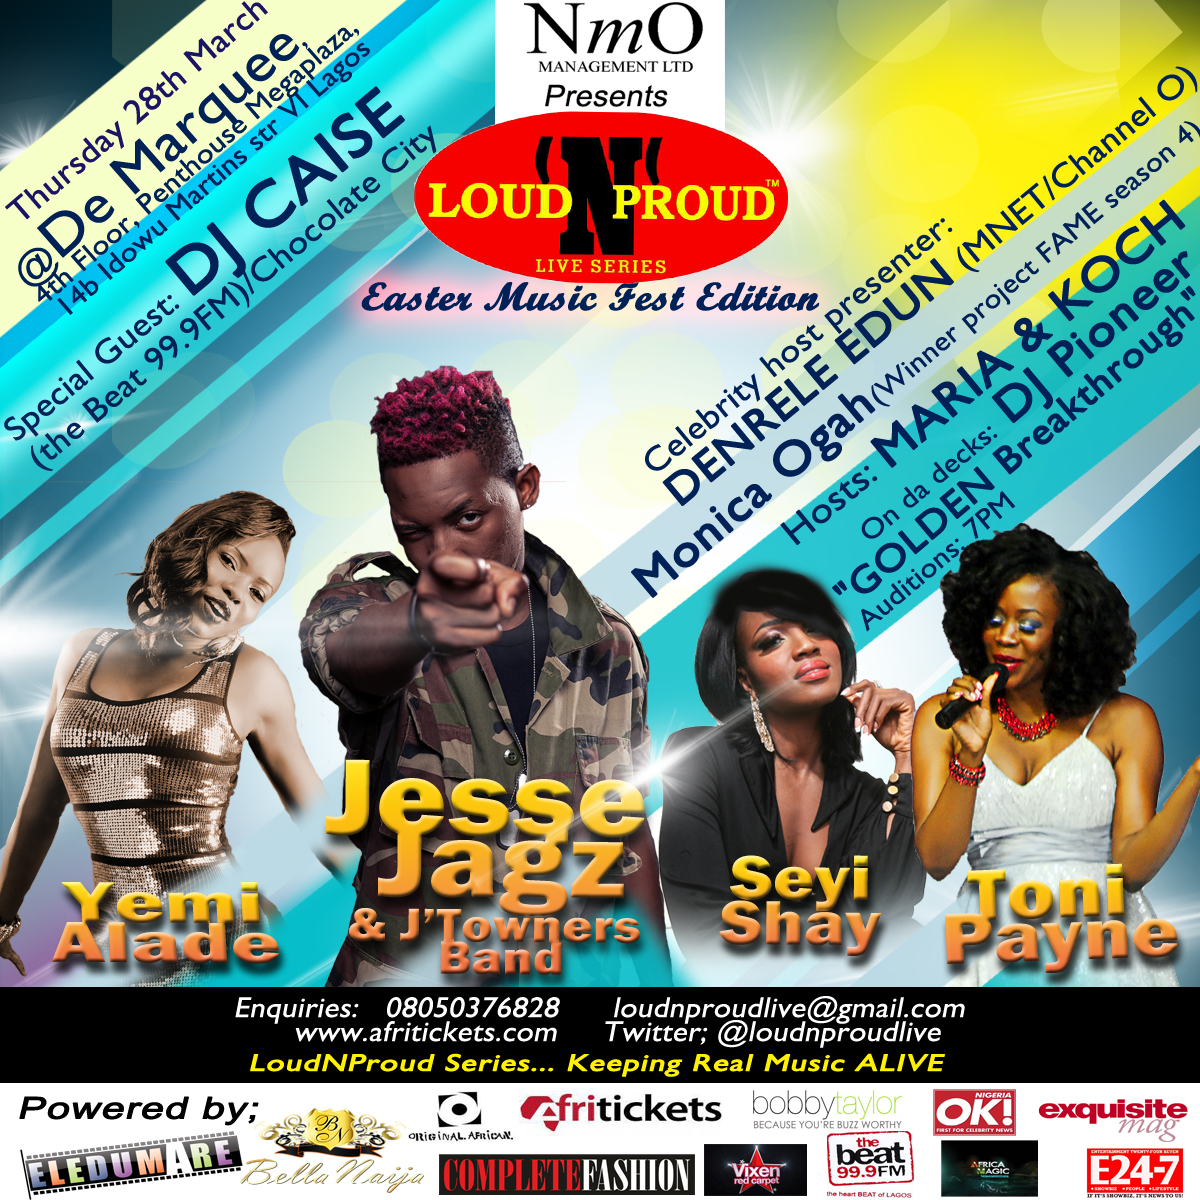 Toni Payne, Jesse Jags, Seyi Shey, Yemi Alade for Loud and Proud Easter Edition